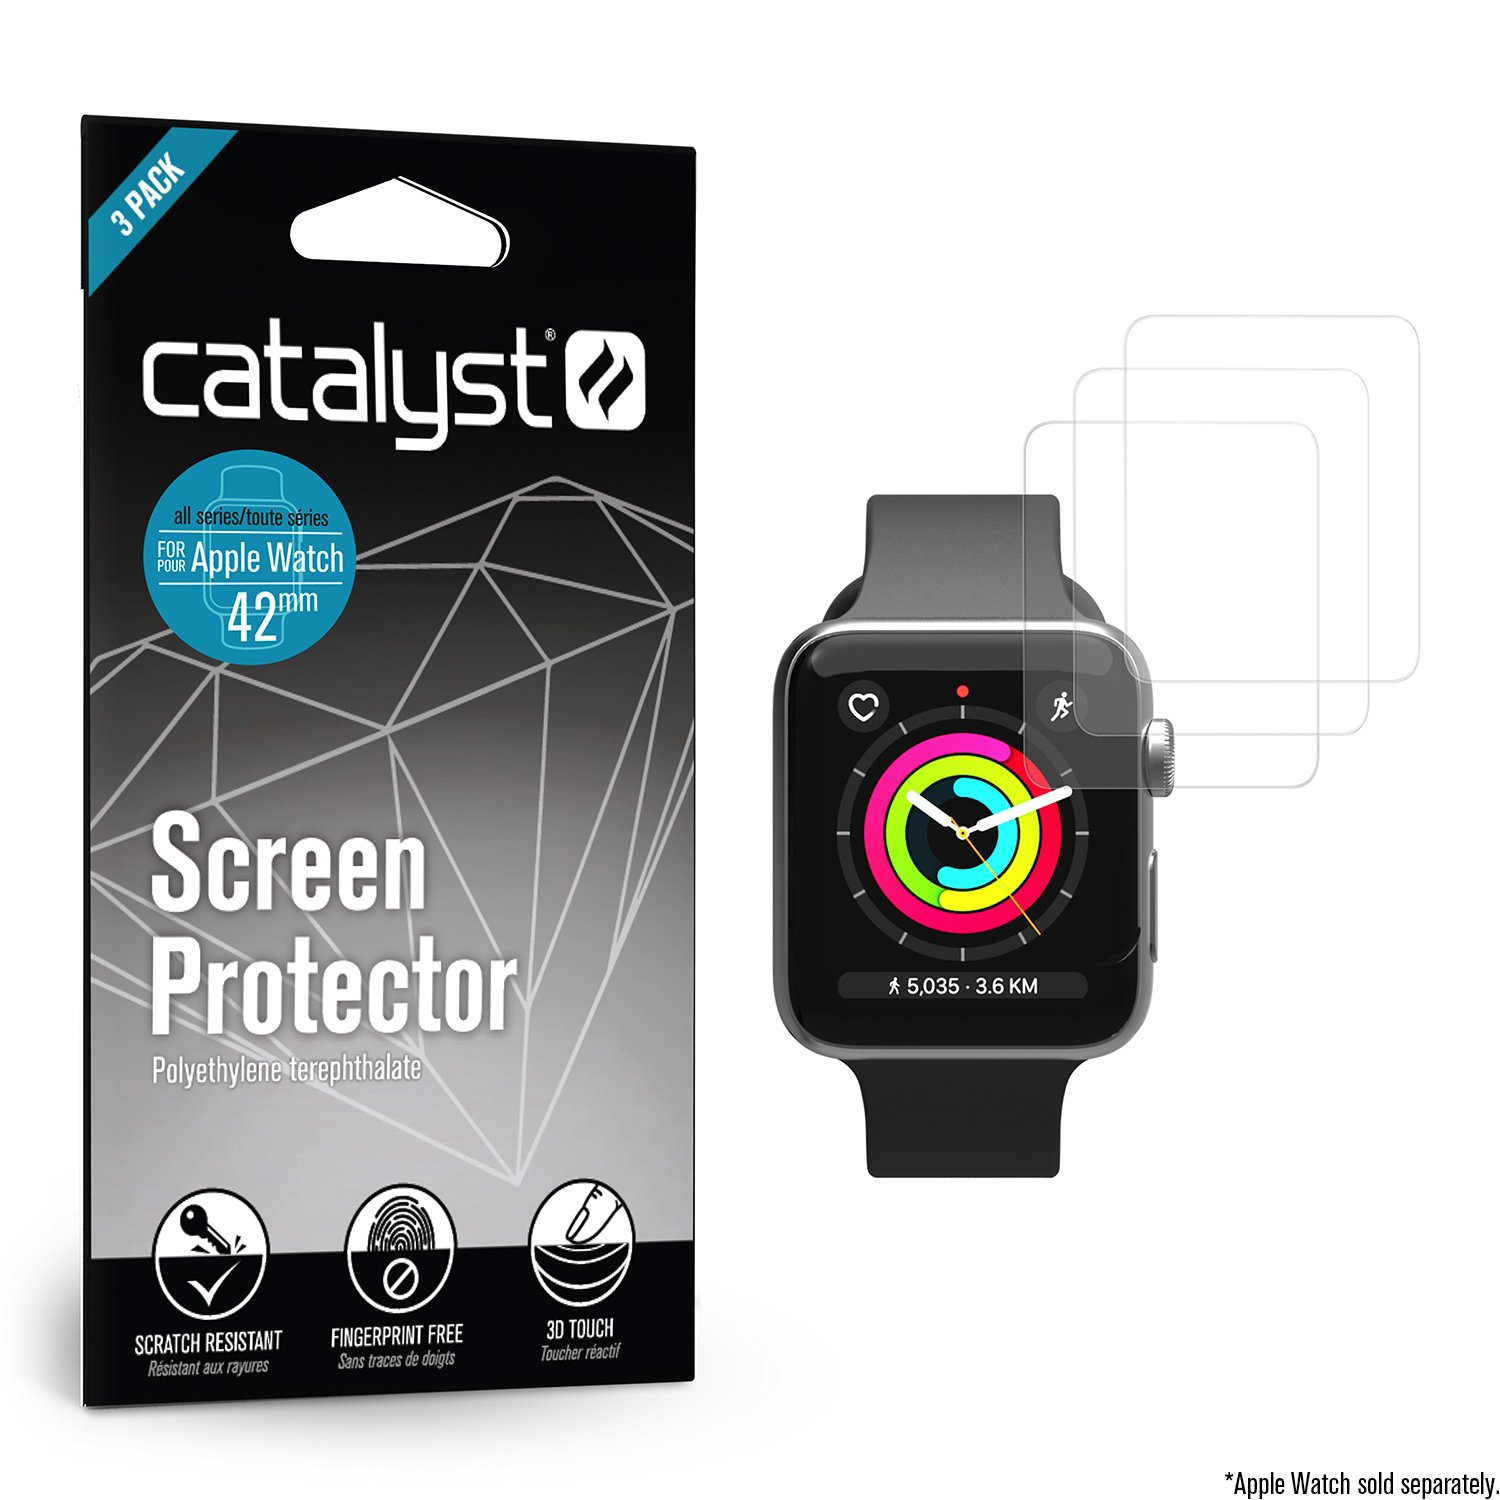 Apple Watch Screen Protector - 42mm Screen Protector for Series 3, Series 2 & Series 1 [3 Packs] Full Coverage Protective Film [Ultra Clear & Thin, Anti-Scratch iWatch Protection] by Catalyst